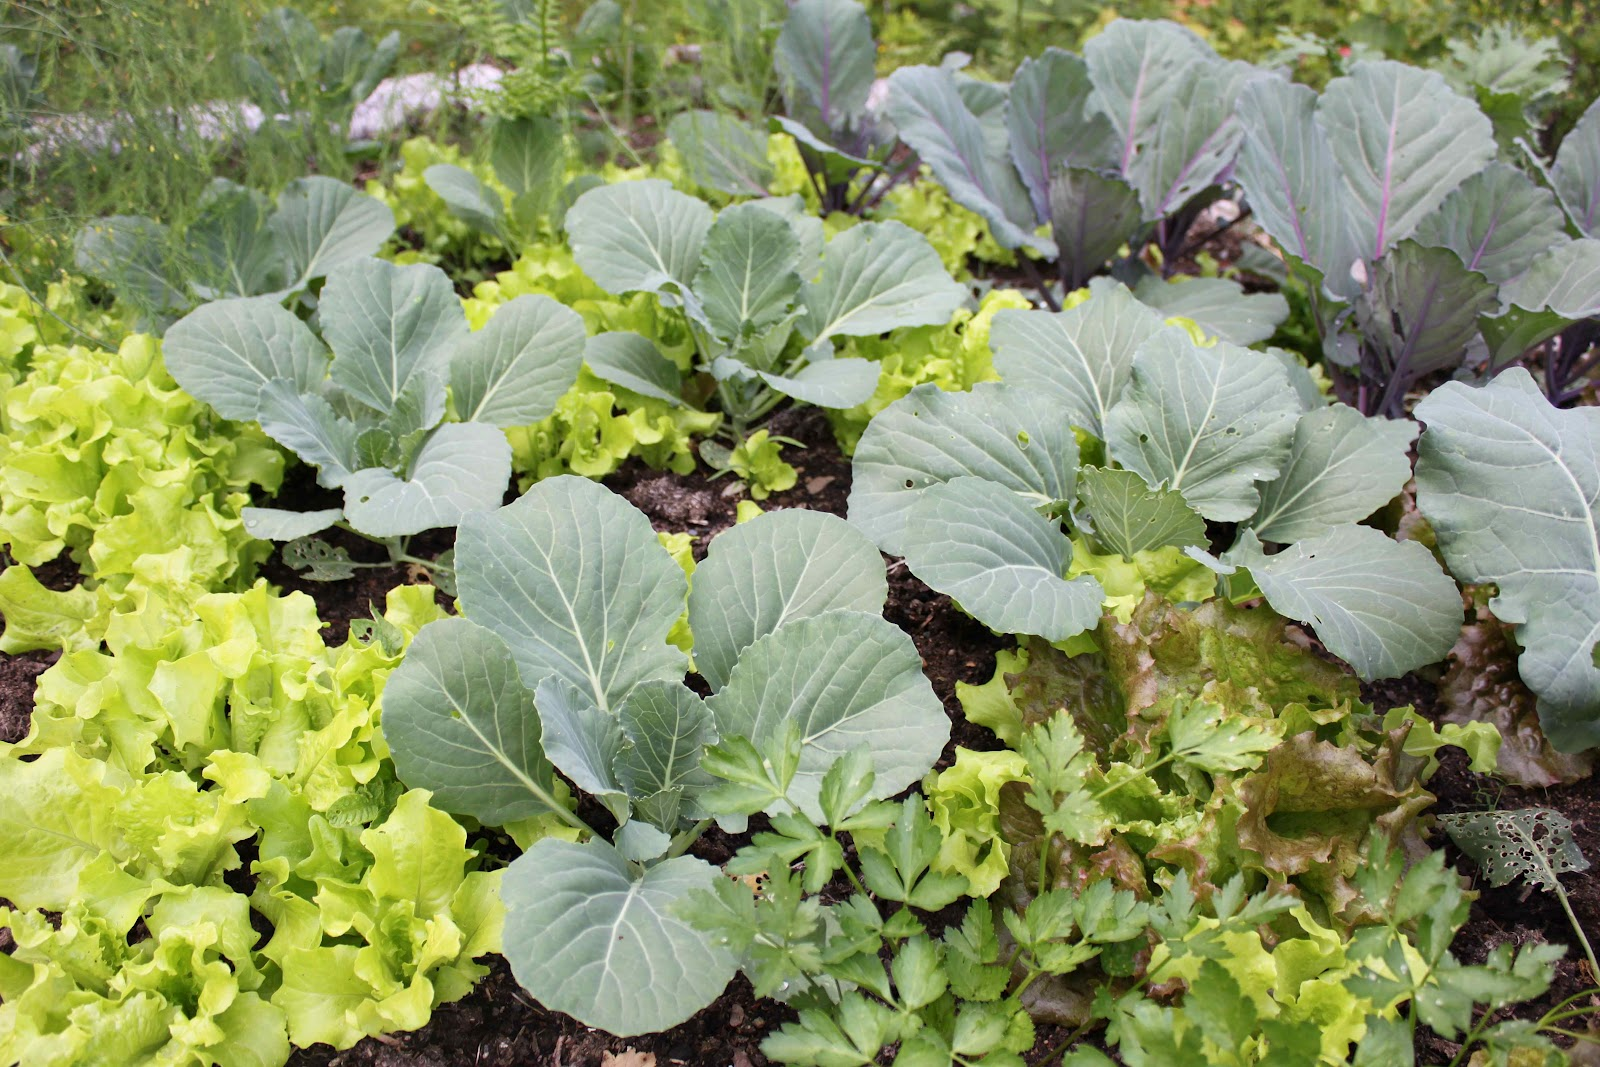 Inter-Plant - This means planting two different crops together based on their growth pattern. As a rule of thumb, you'll want to pair slow growing large crops with fast growing small crops. Cabbages and lettuce is a great example. Kale is a fast maturing cool season crop that grows well inter cropped with pole beans or tomatoes. Bonus: Planting tightly (while still allowing your plants the room to mature) leaves less room for weeds while increasing the diversity of the garden.